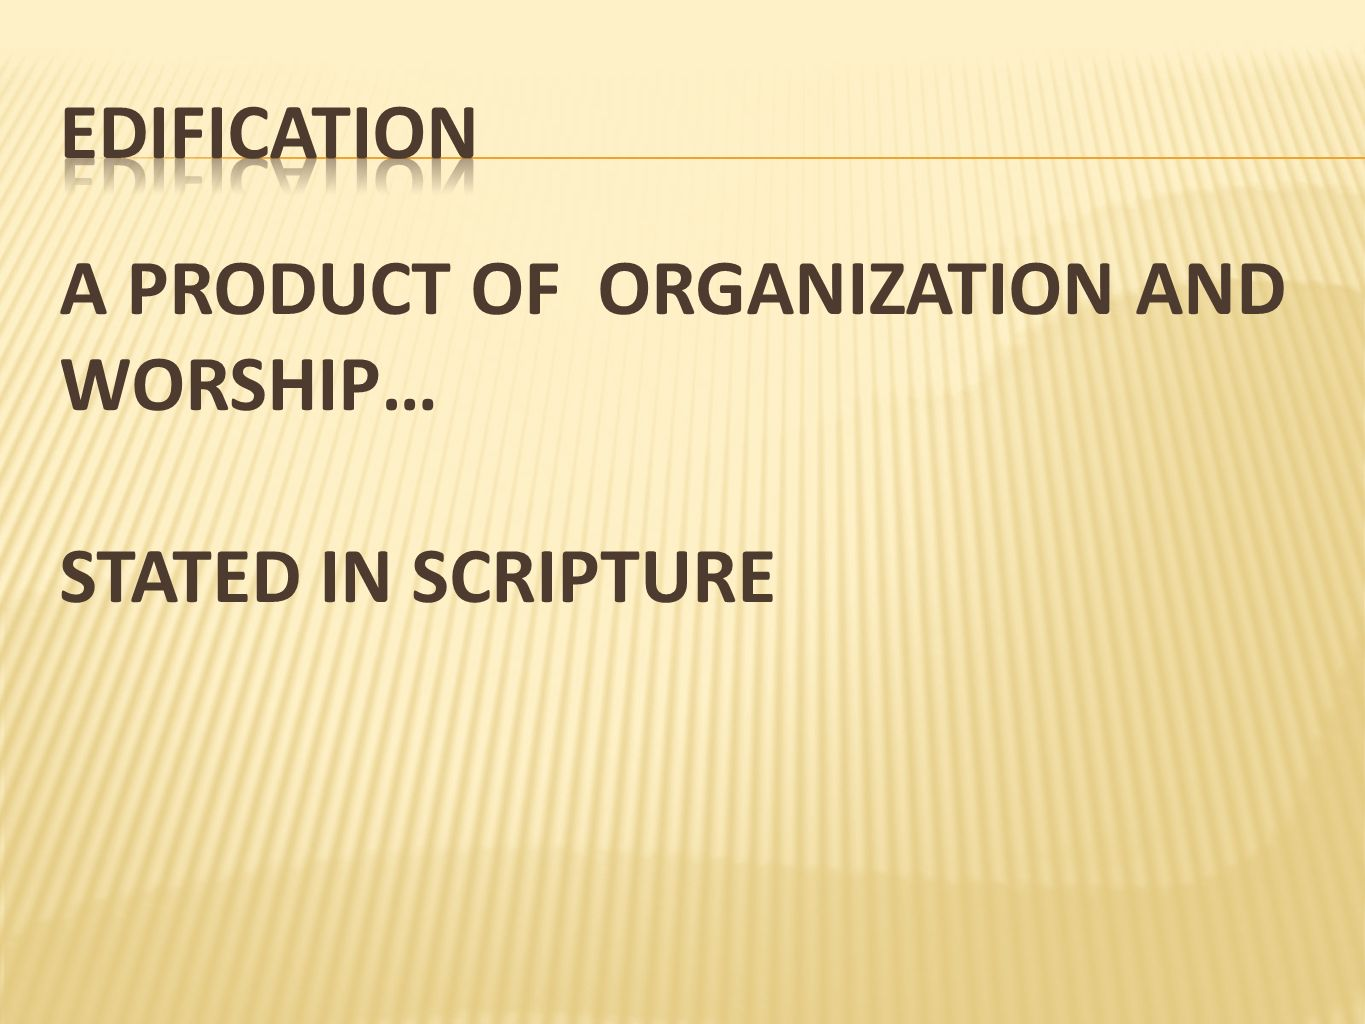 EDIFICATION A PRODUCT OF ORGANIZATION AND WORSHIP… STATED IN SCRIPTURE